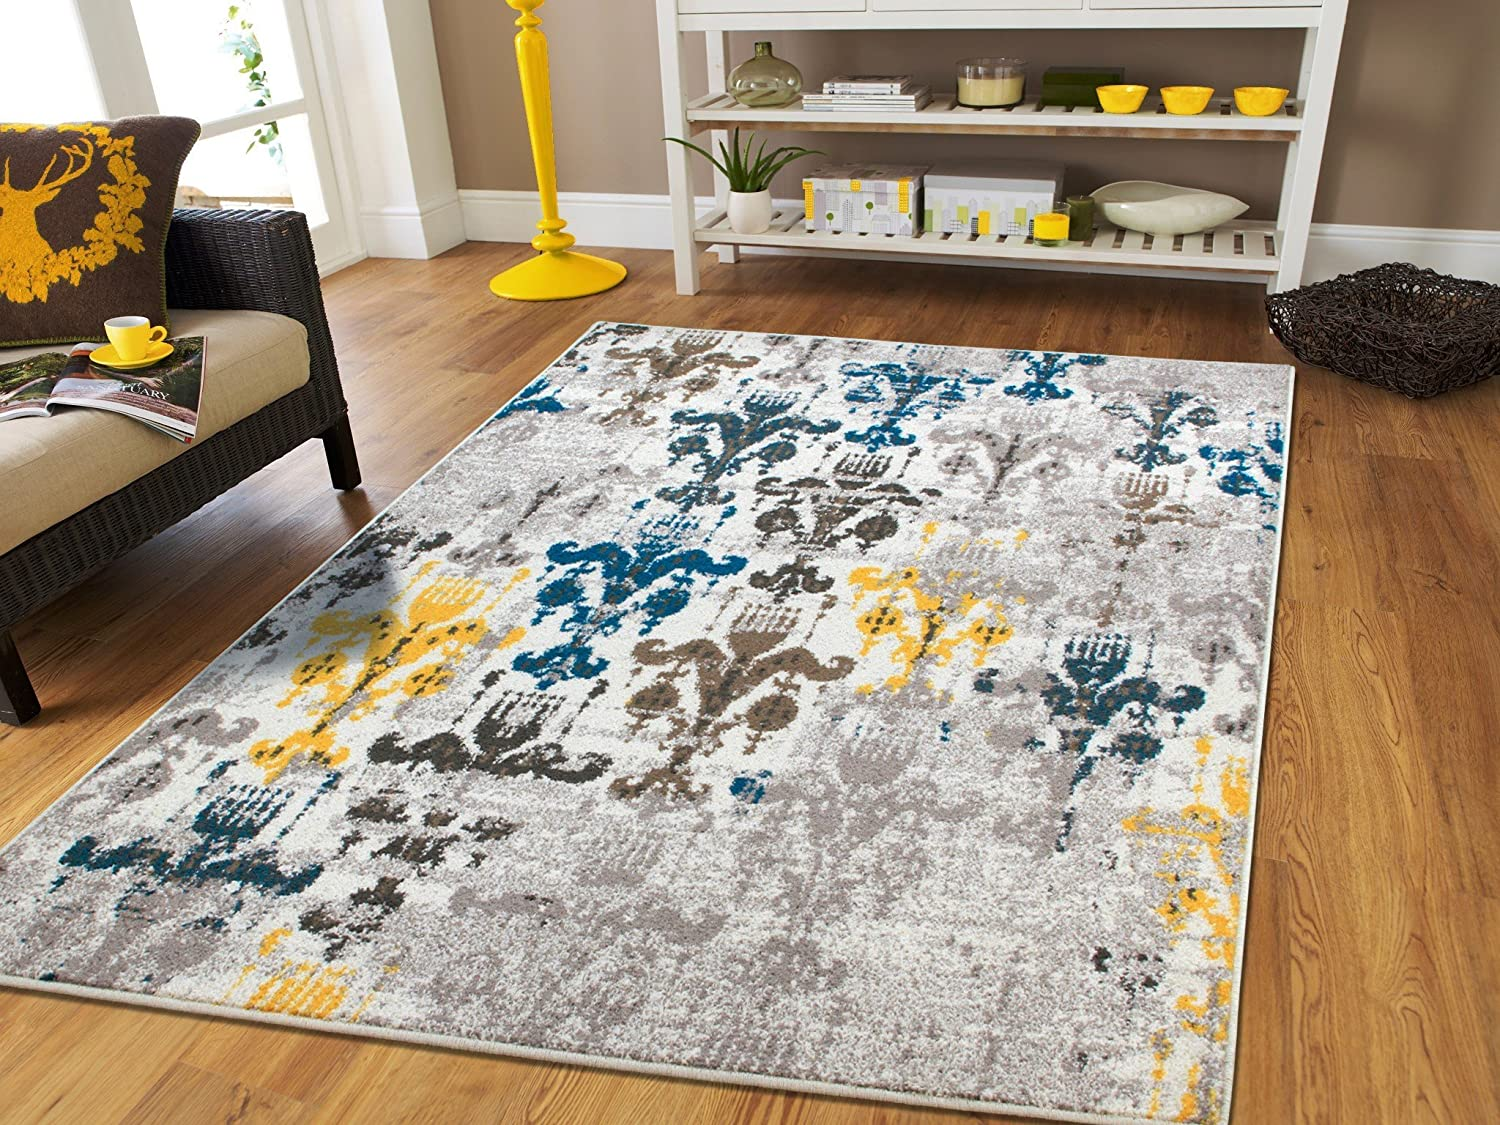 florida shag p safavieh x area rugs rug ft grey gray beige and